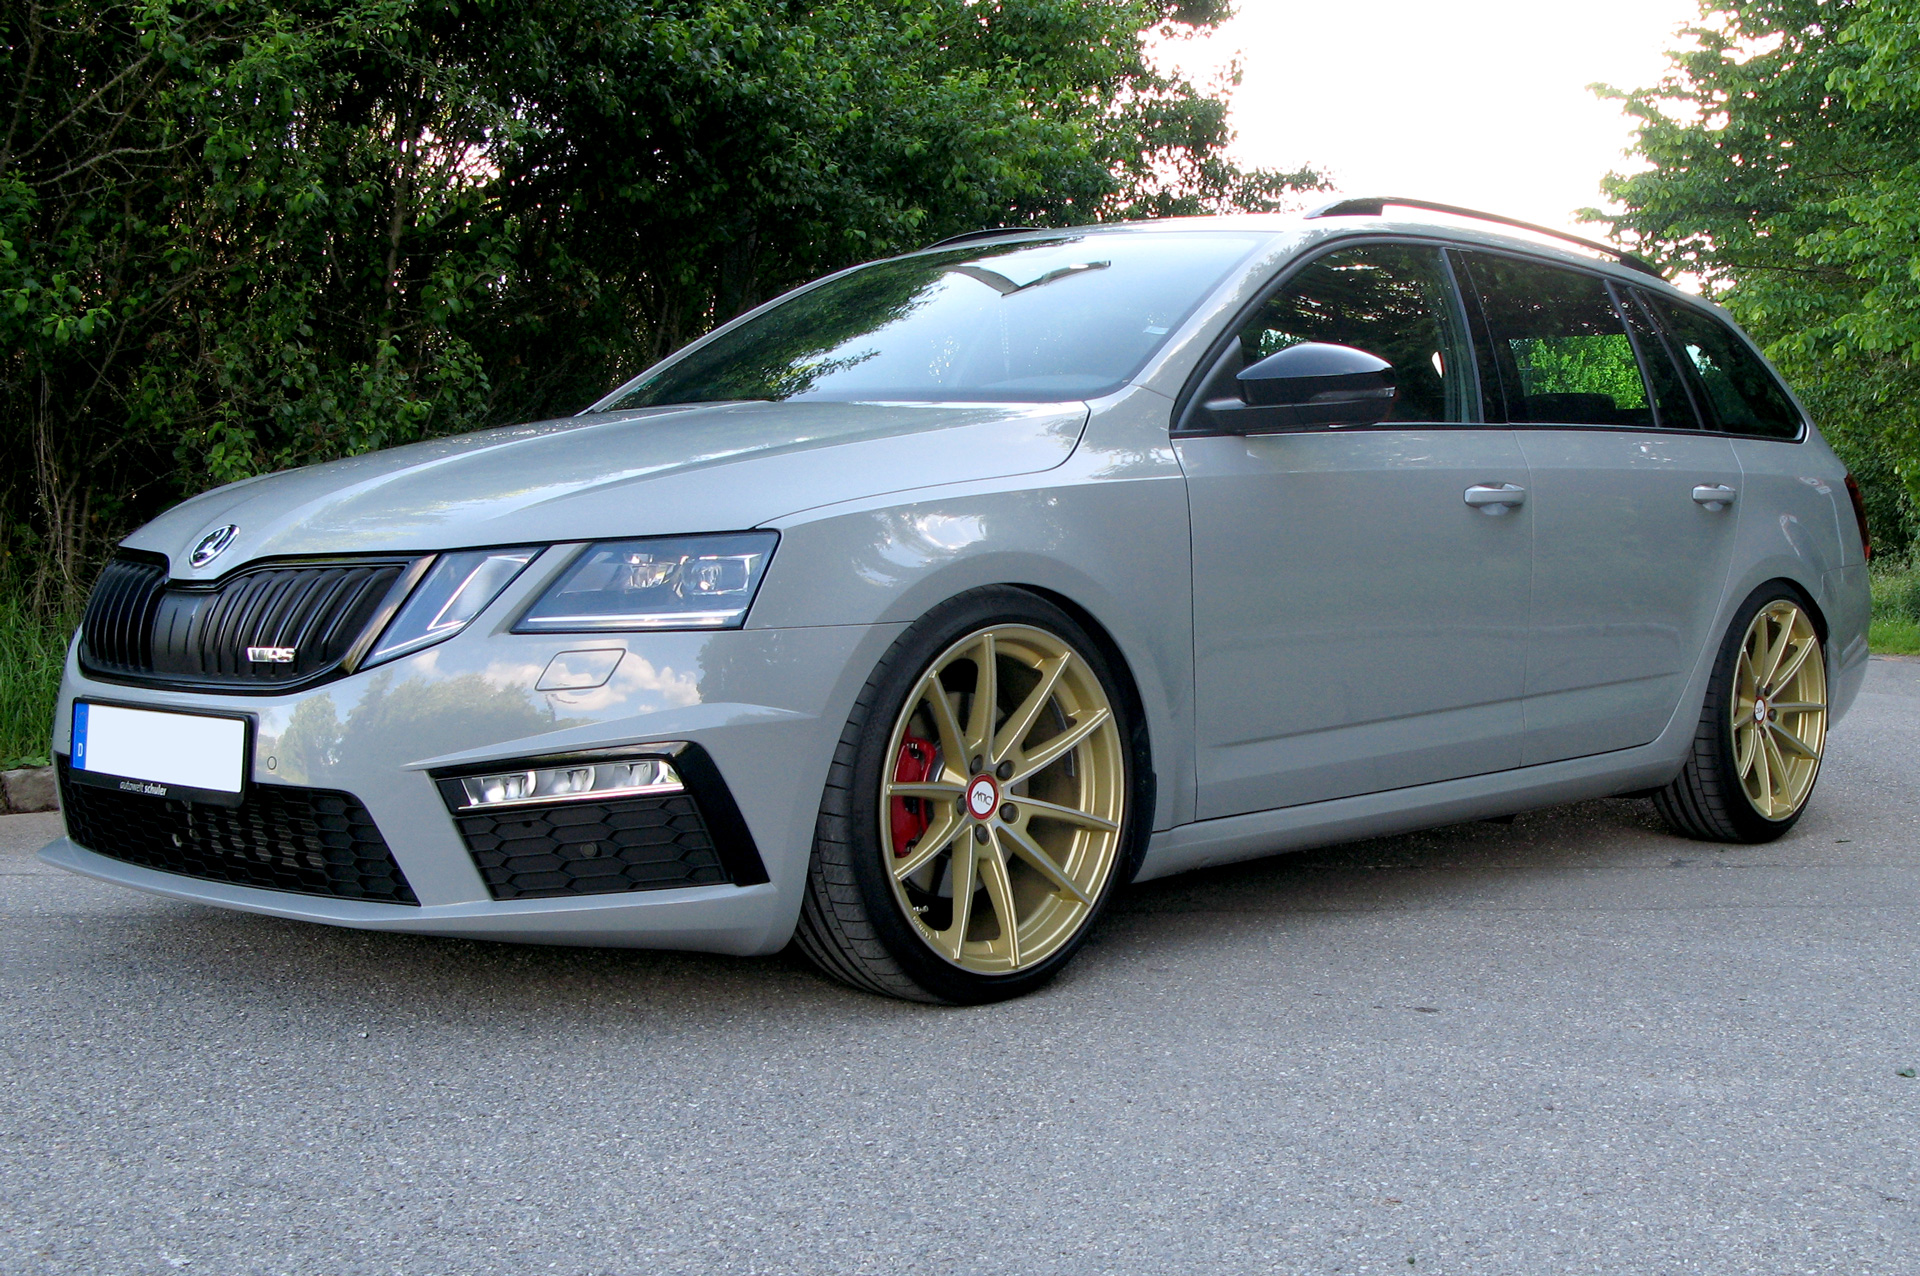 Skoda Octavia Rs 5e Facelift Deluxe Wheels Deutschland